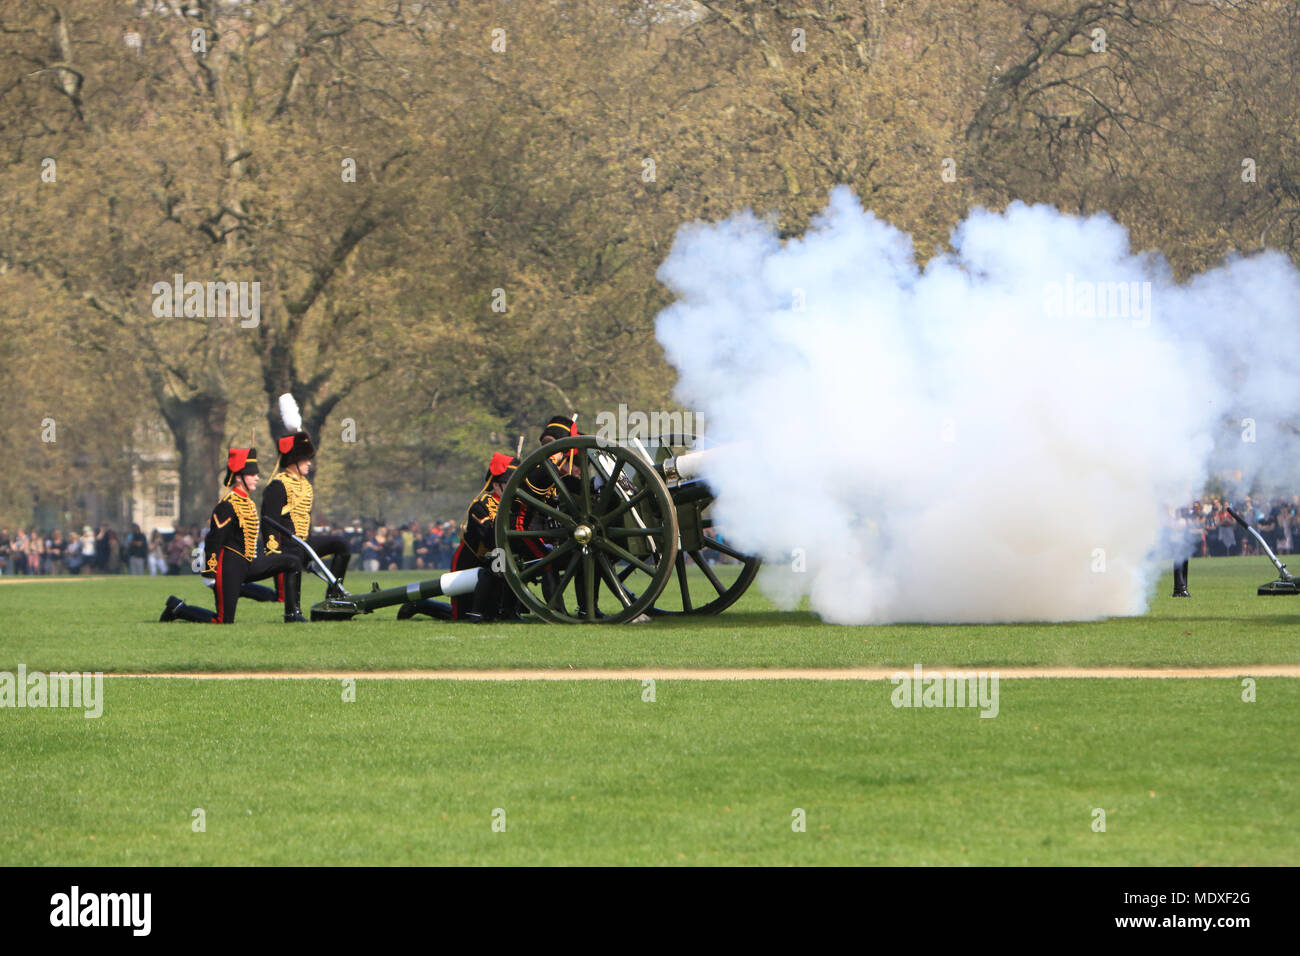 London, UK. 21st April, 2018. A 41 gun salute in Hyde Park, London, took place today on April 21st, to mark the 92nd birthday of Her Majesty Queen Elizabeth 11. Credit: Monica Wells/Alamy Live News - Stock Image